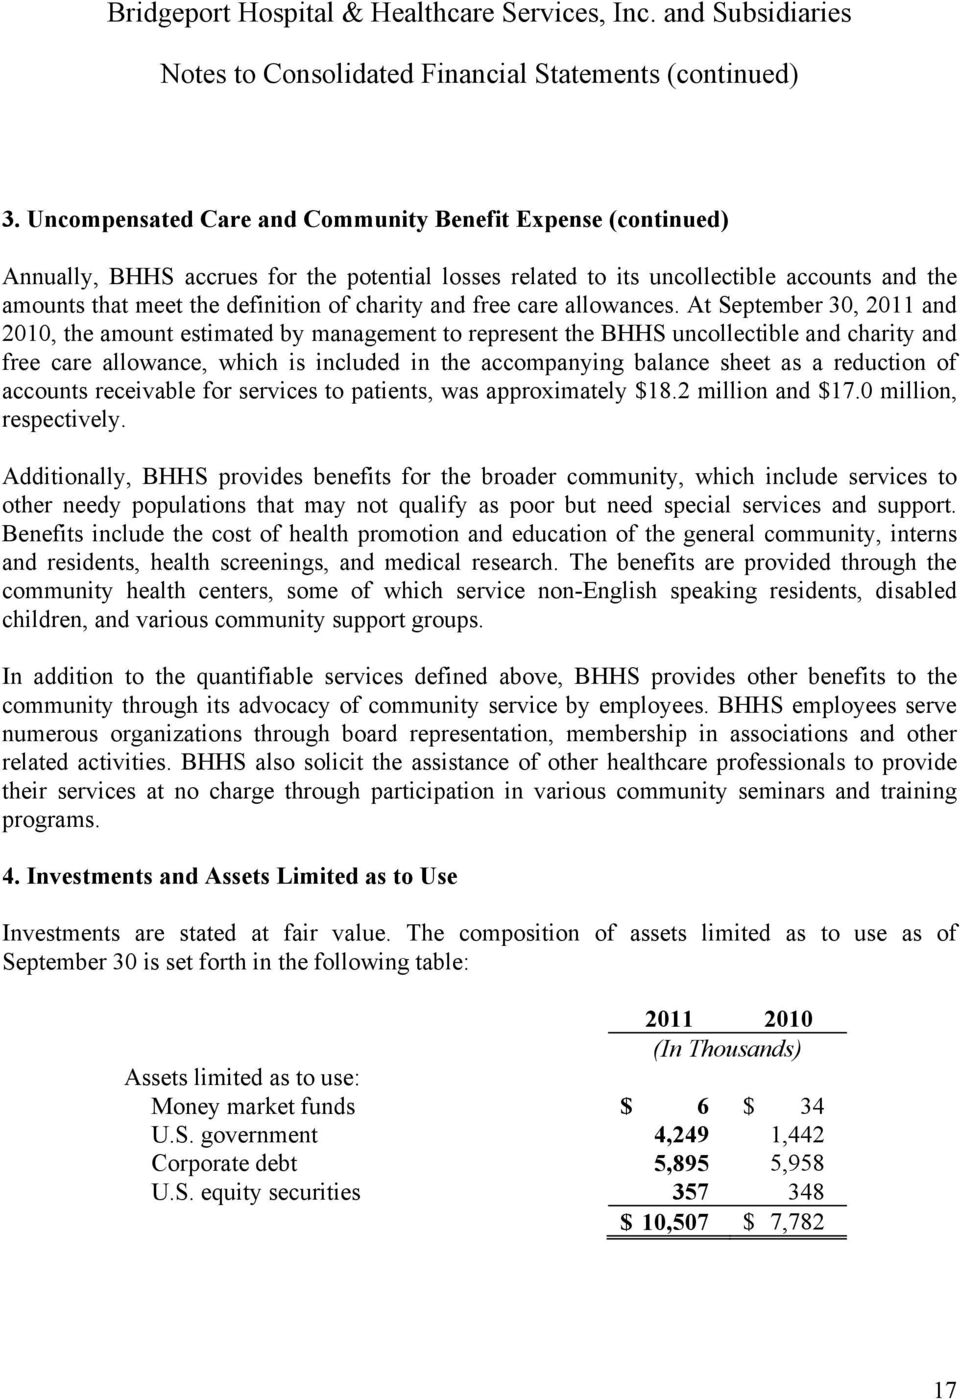 At September 30, 2011 and 2010, the amount estimated by management to represent the BHHS uncollectible and charity and free care allowance, which is included in the accompanying balance sheet as a